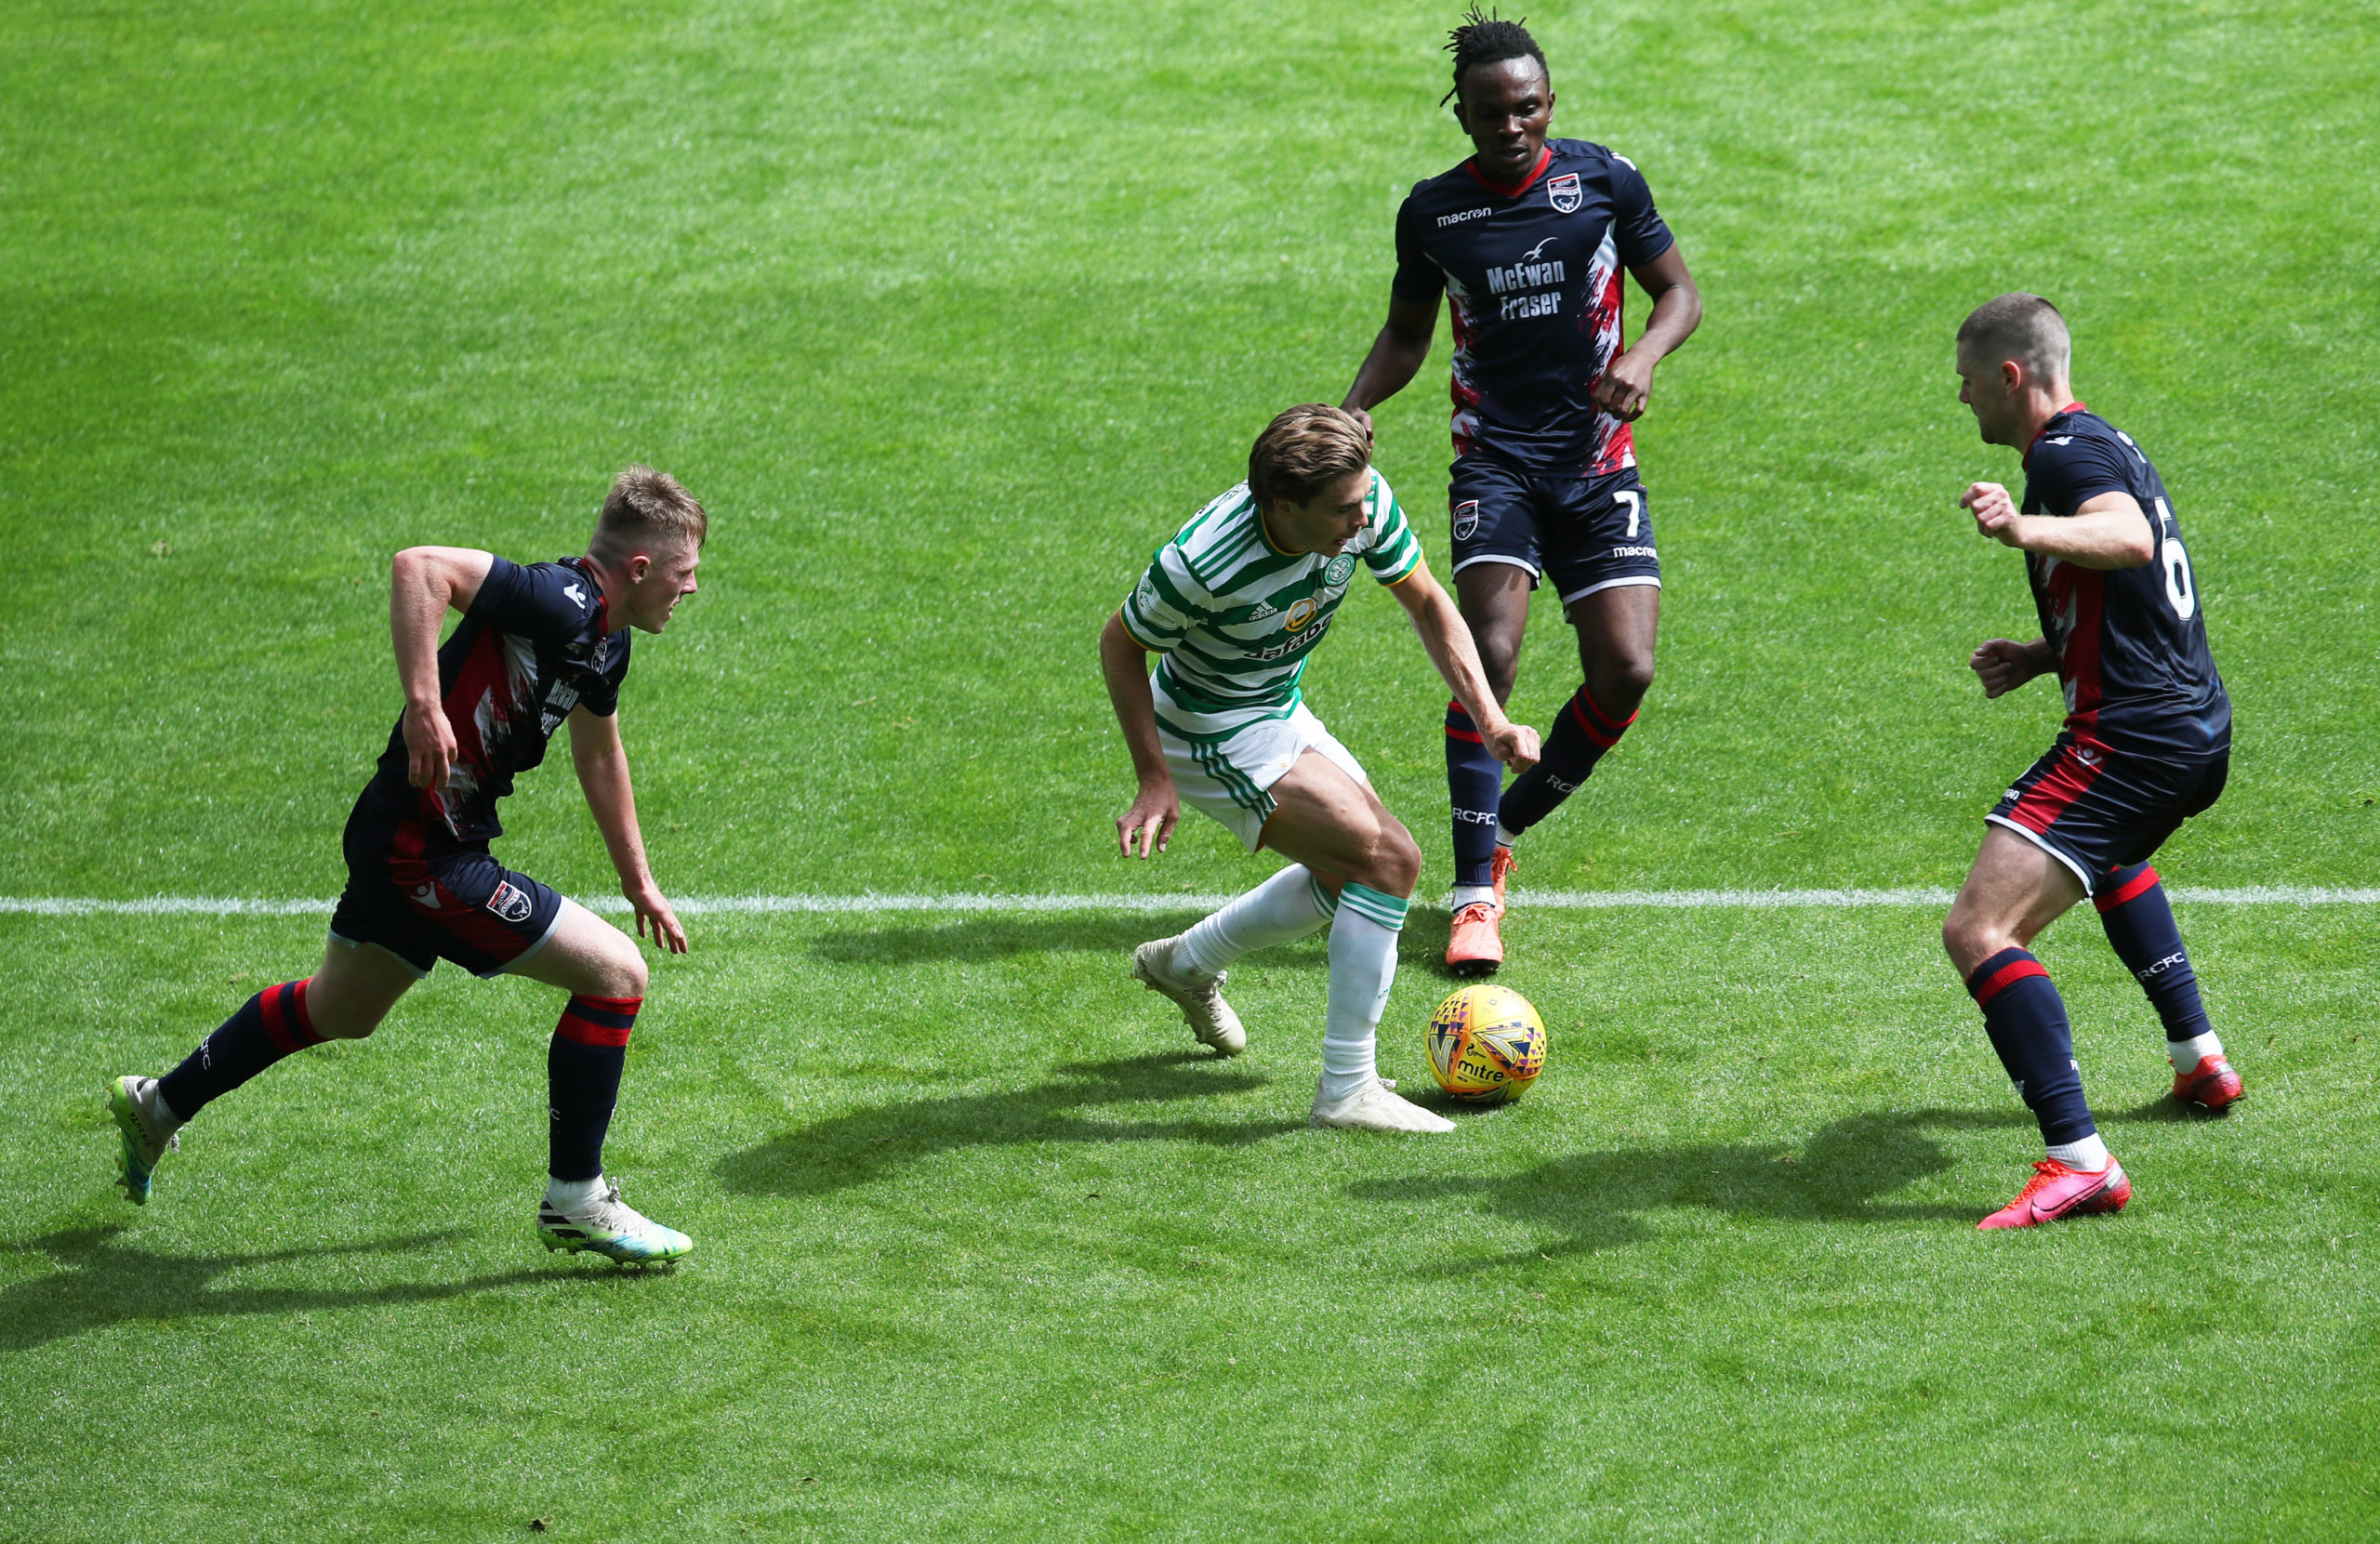 Celtic played Ross County in pre-season